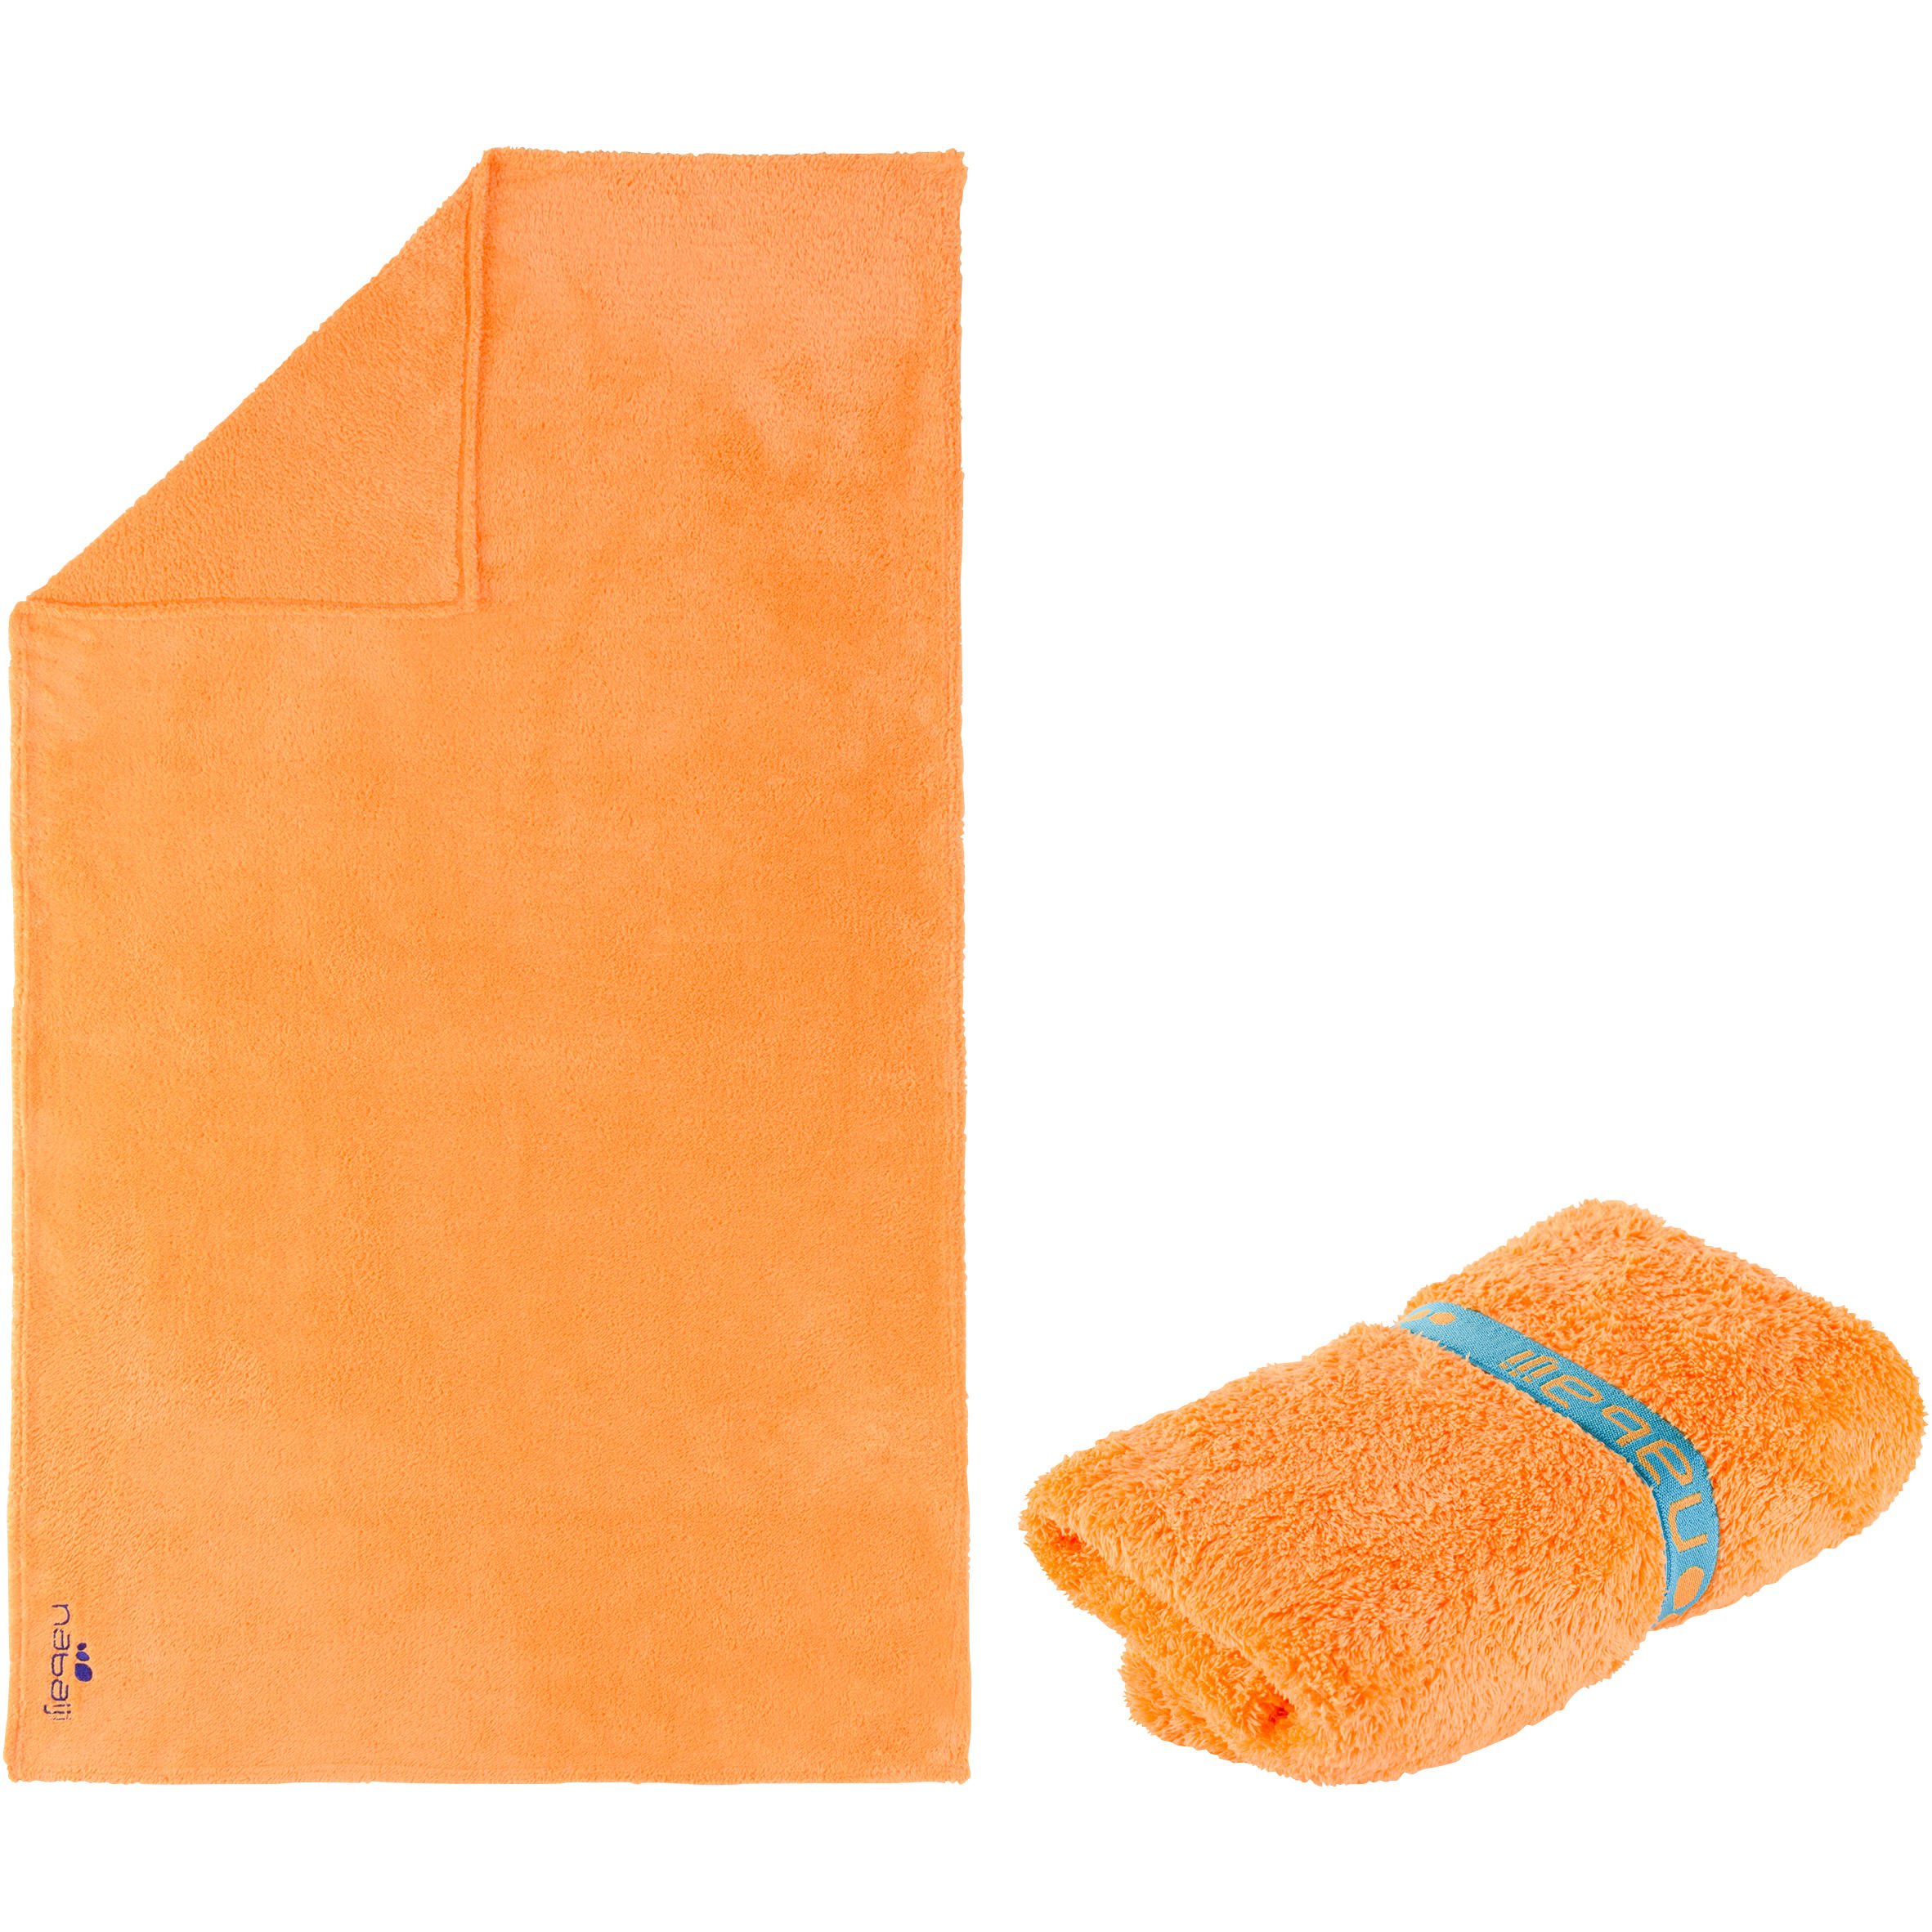 Serviette microfibre ultra douce orange clair taille G 2,6' x 4,7'